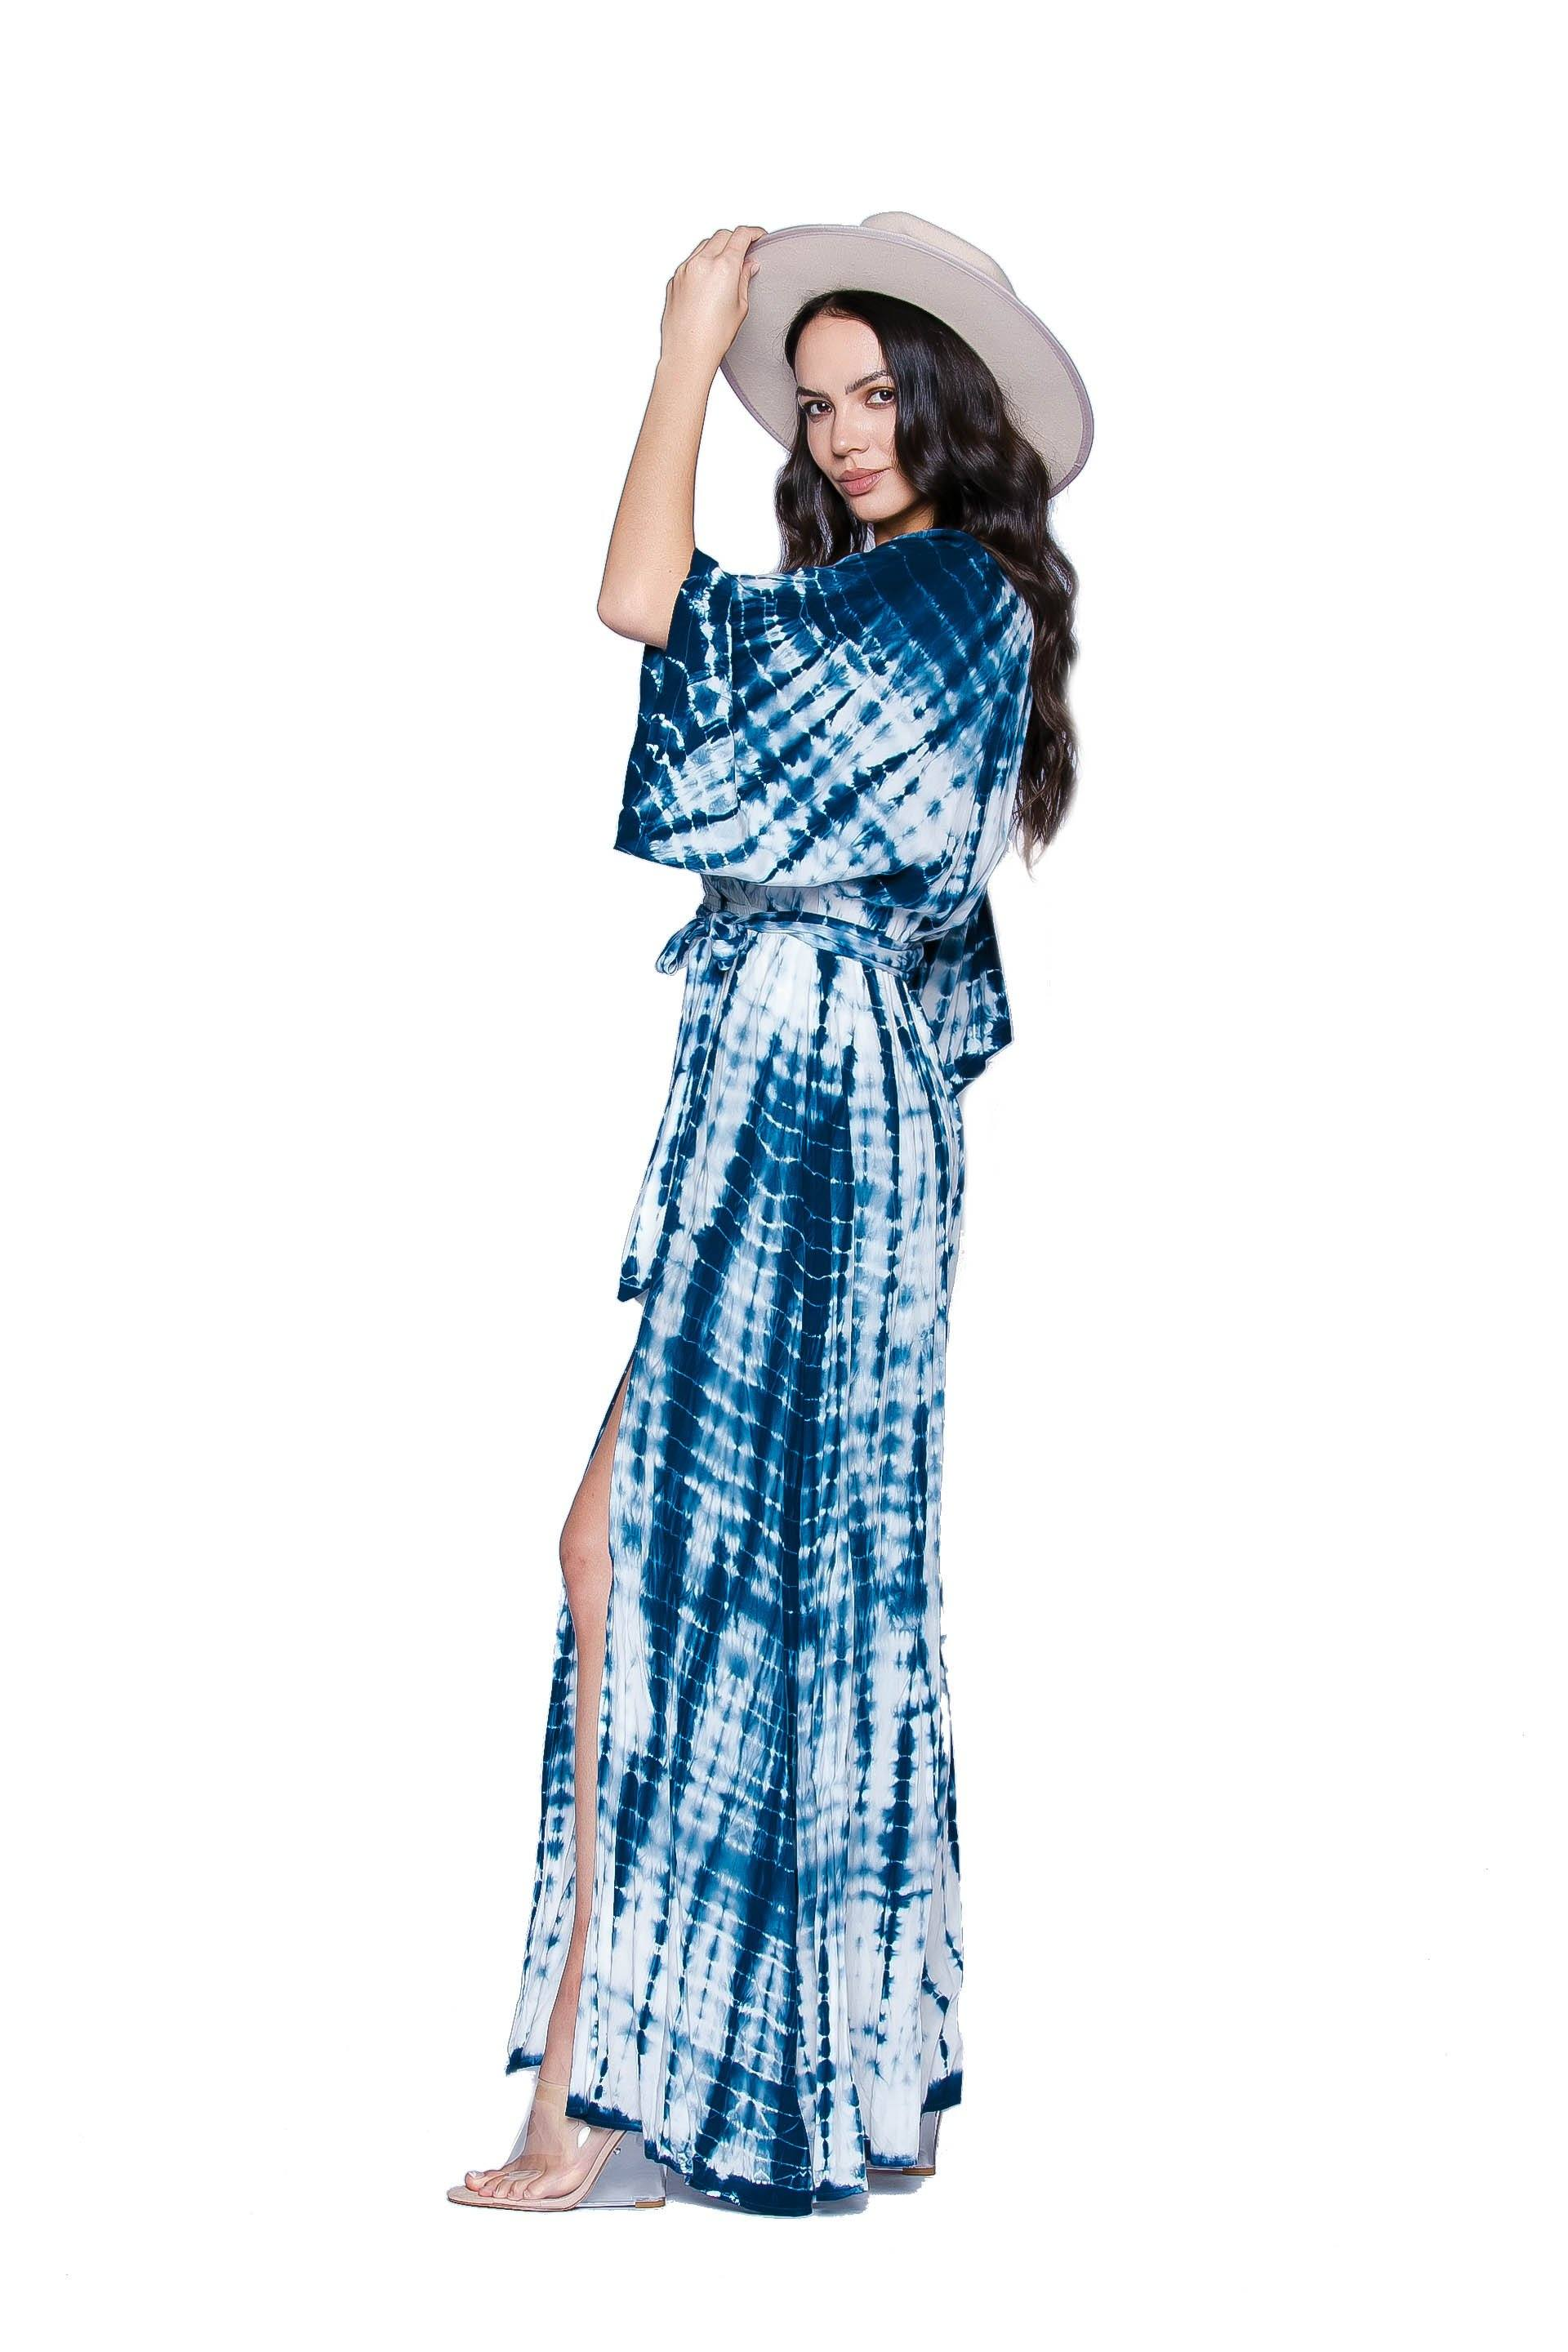 Blue Lagoon Tie Dye Maxi Dress Dresses HYPEACH BOUTIQUE